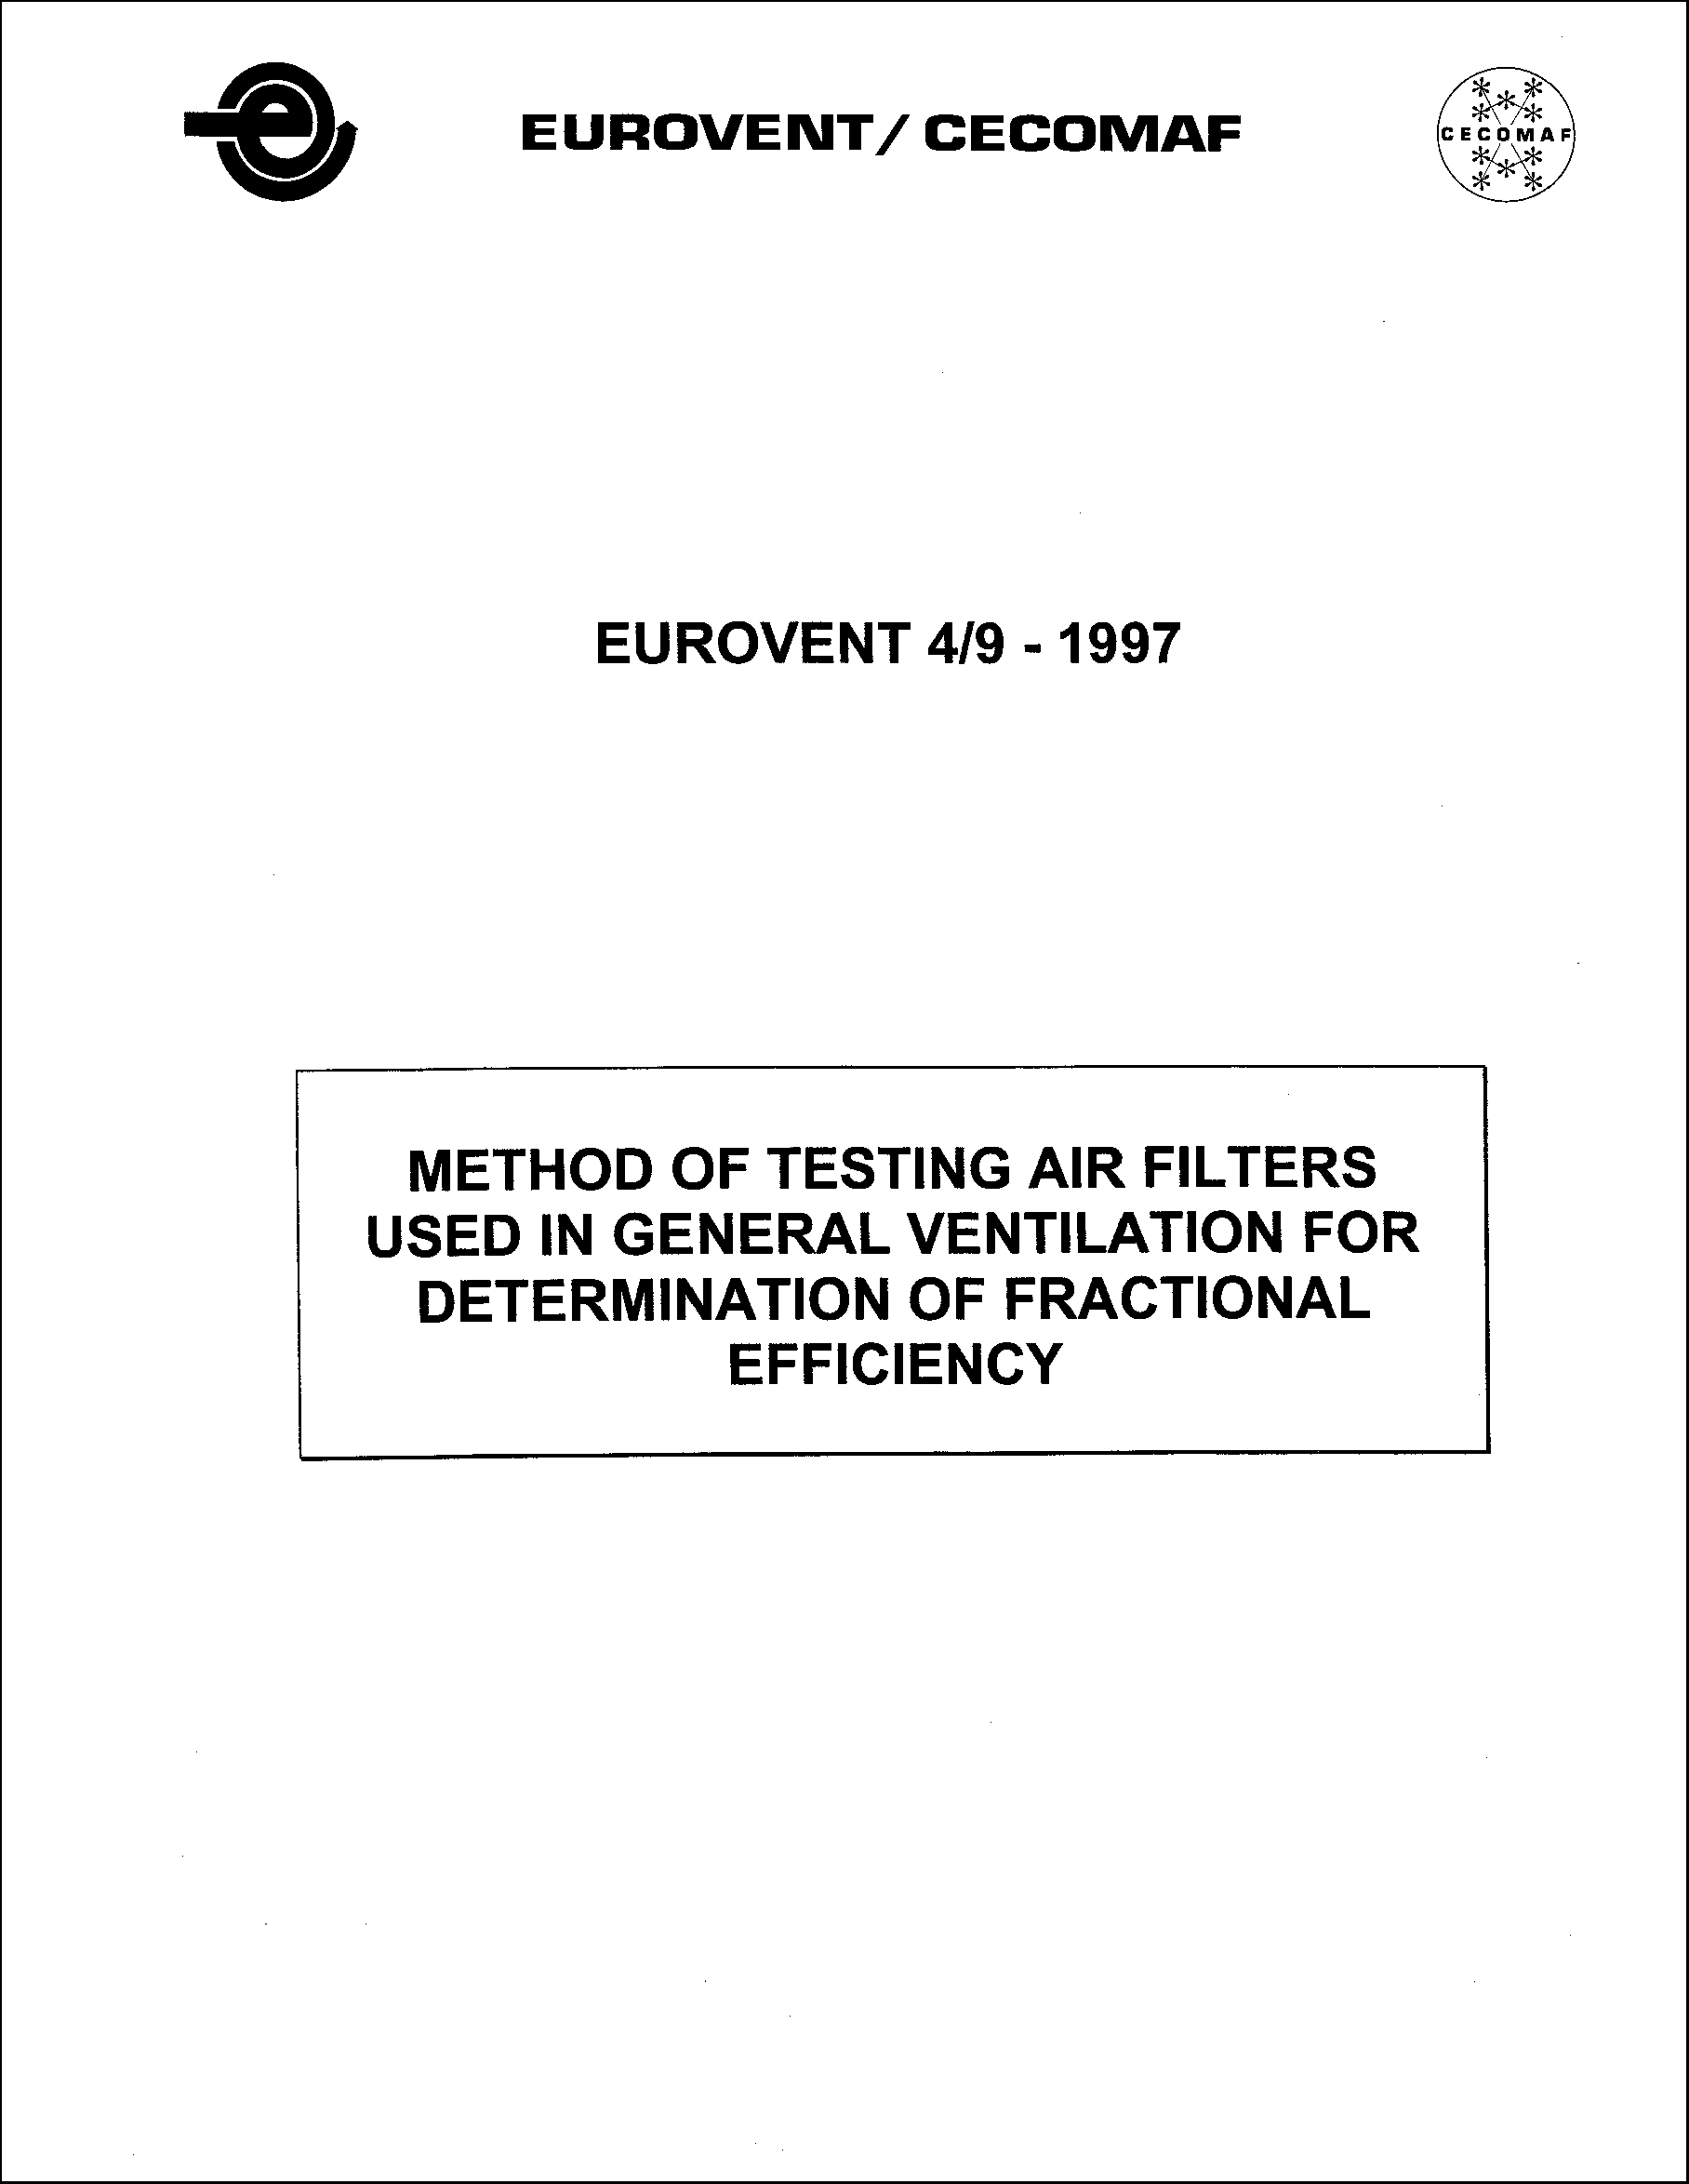 1997 - Method of testing air filters used in general ventilation for determination of fractional efficiency